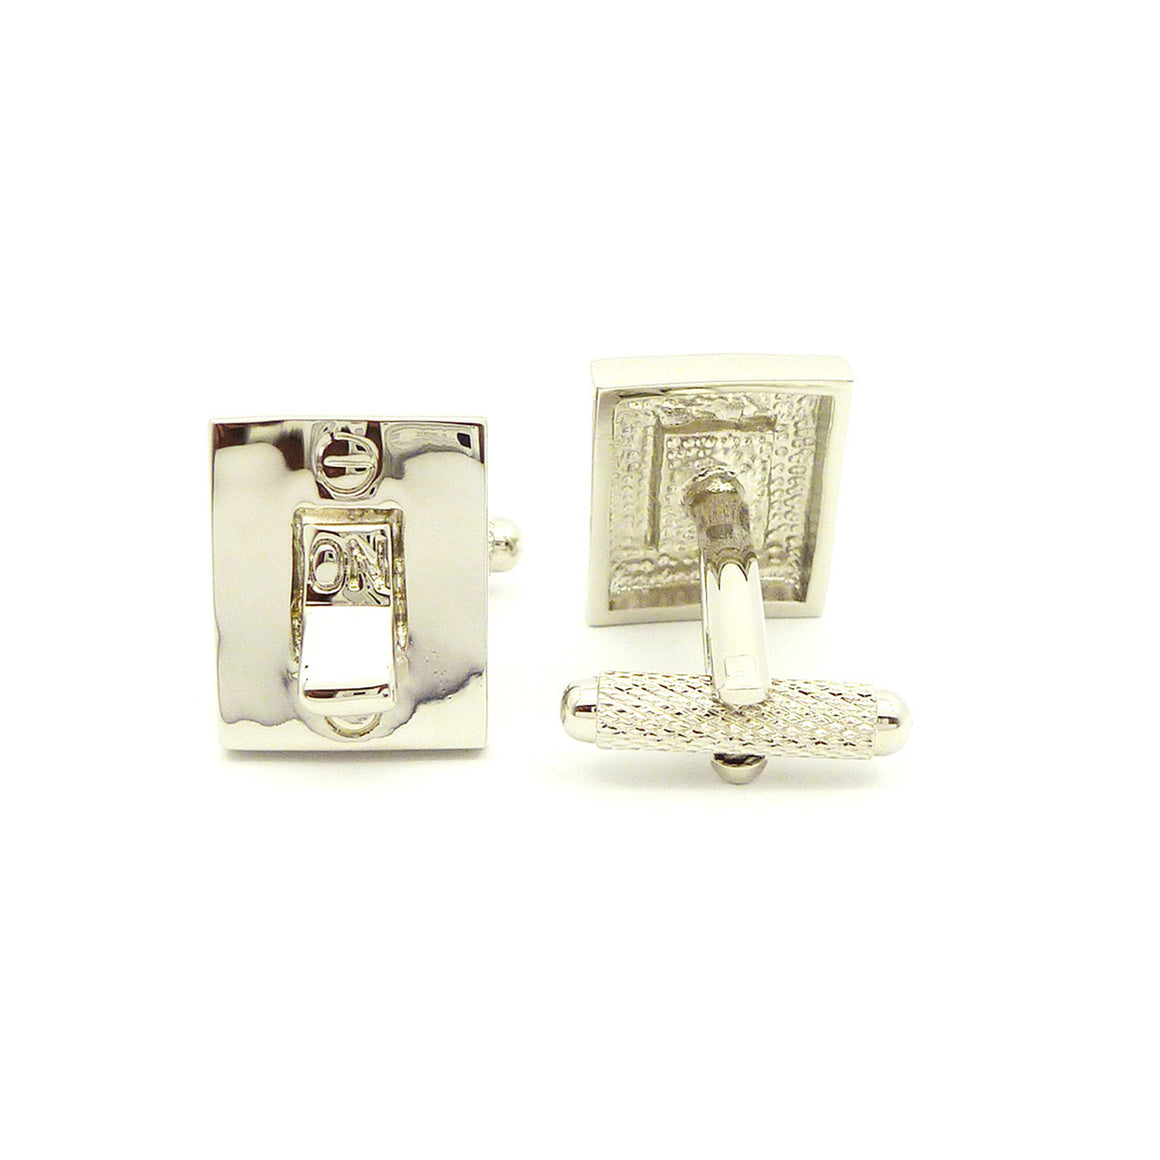 Wild Links - Silver Light Switch Cufflinks